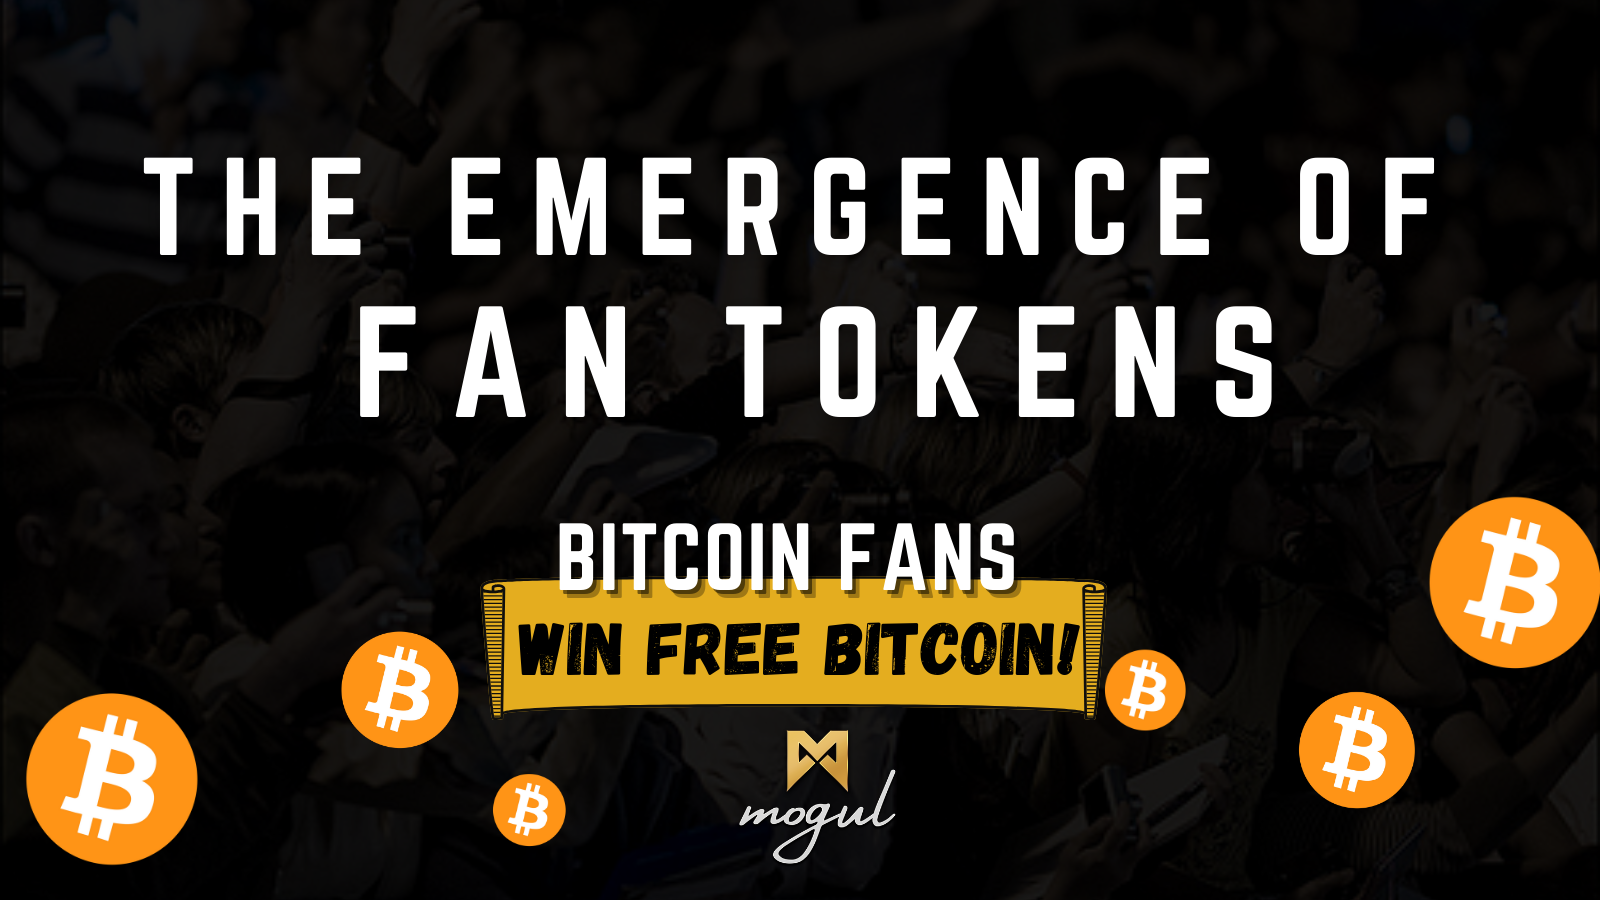 The Emergence of Fan Tokens